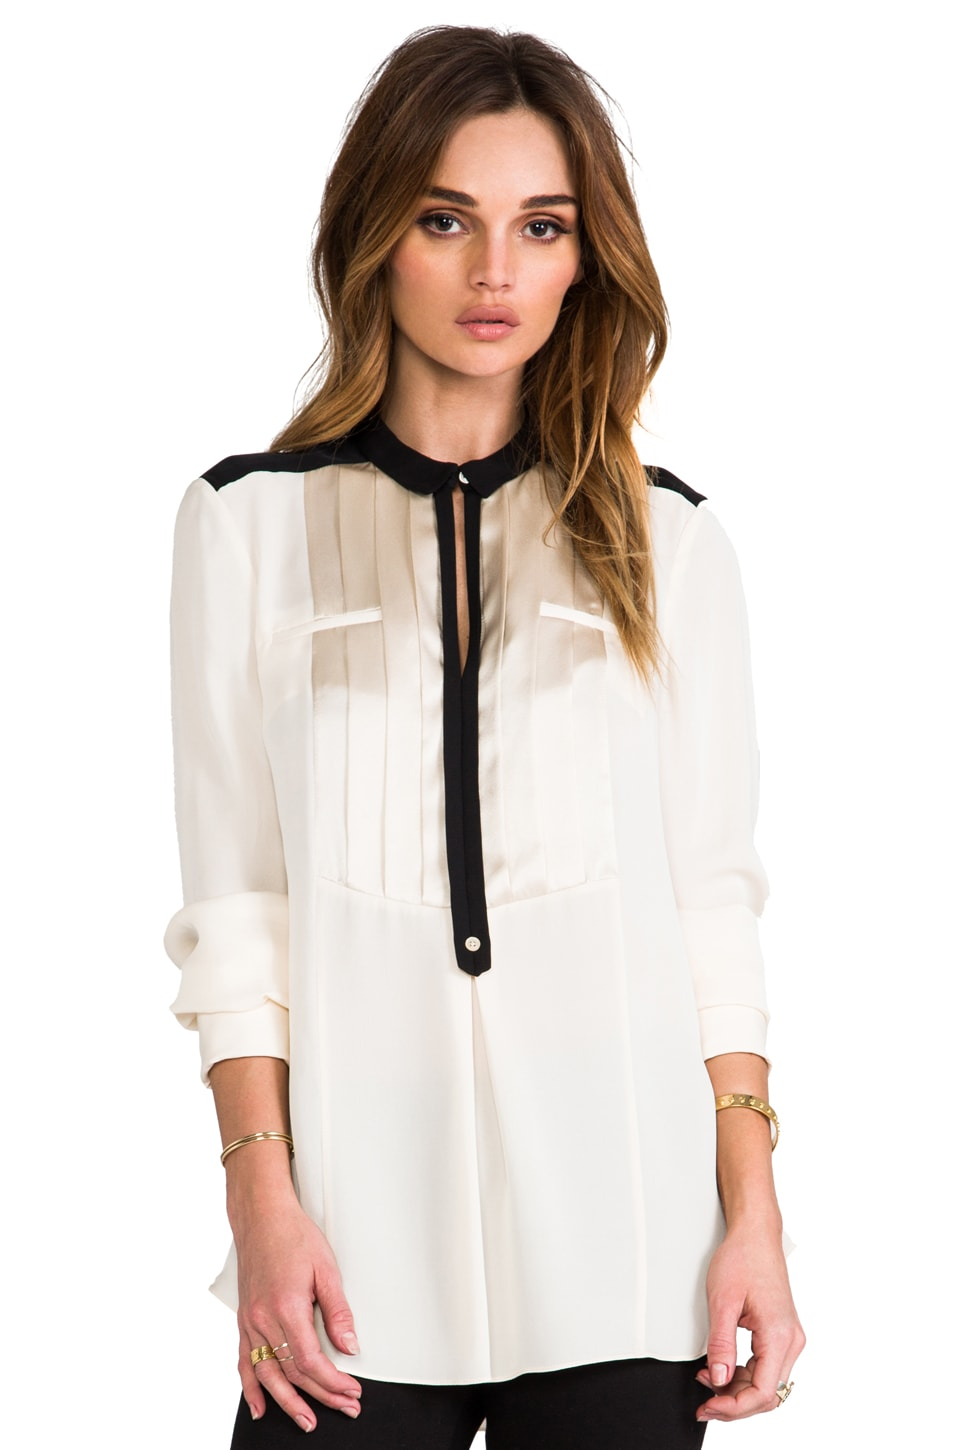 Halston Heritage Tuxedo Shirt in Bone/Black